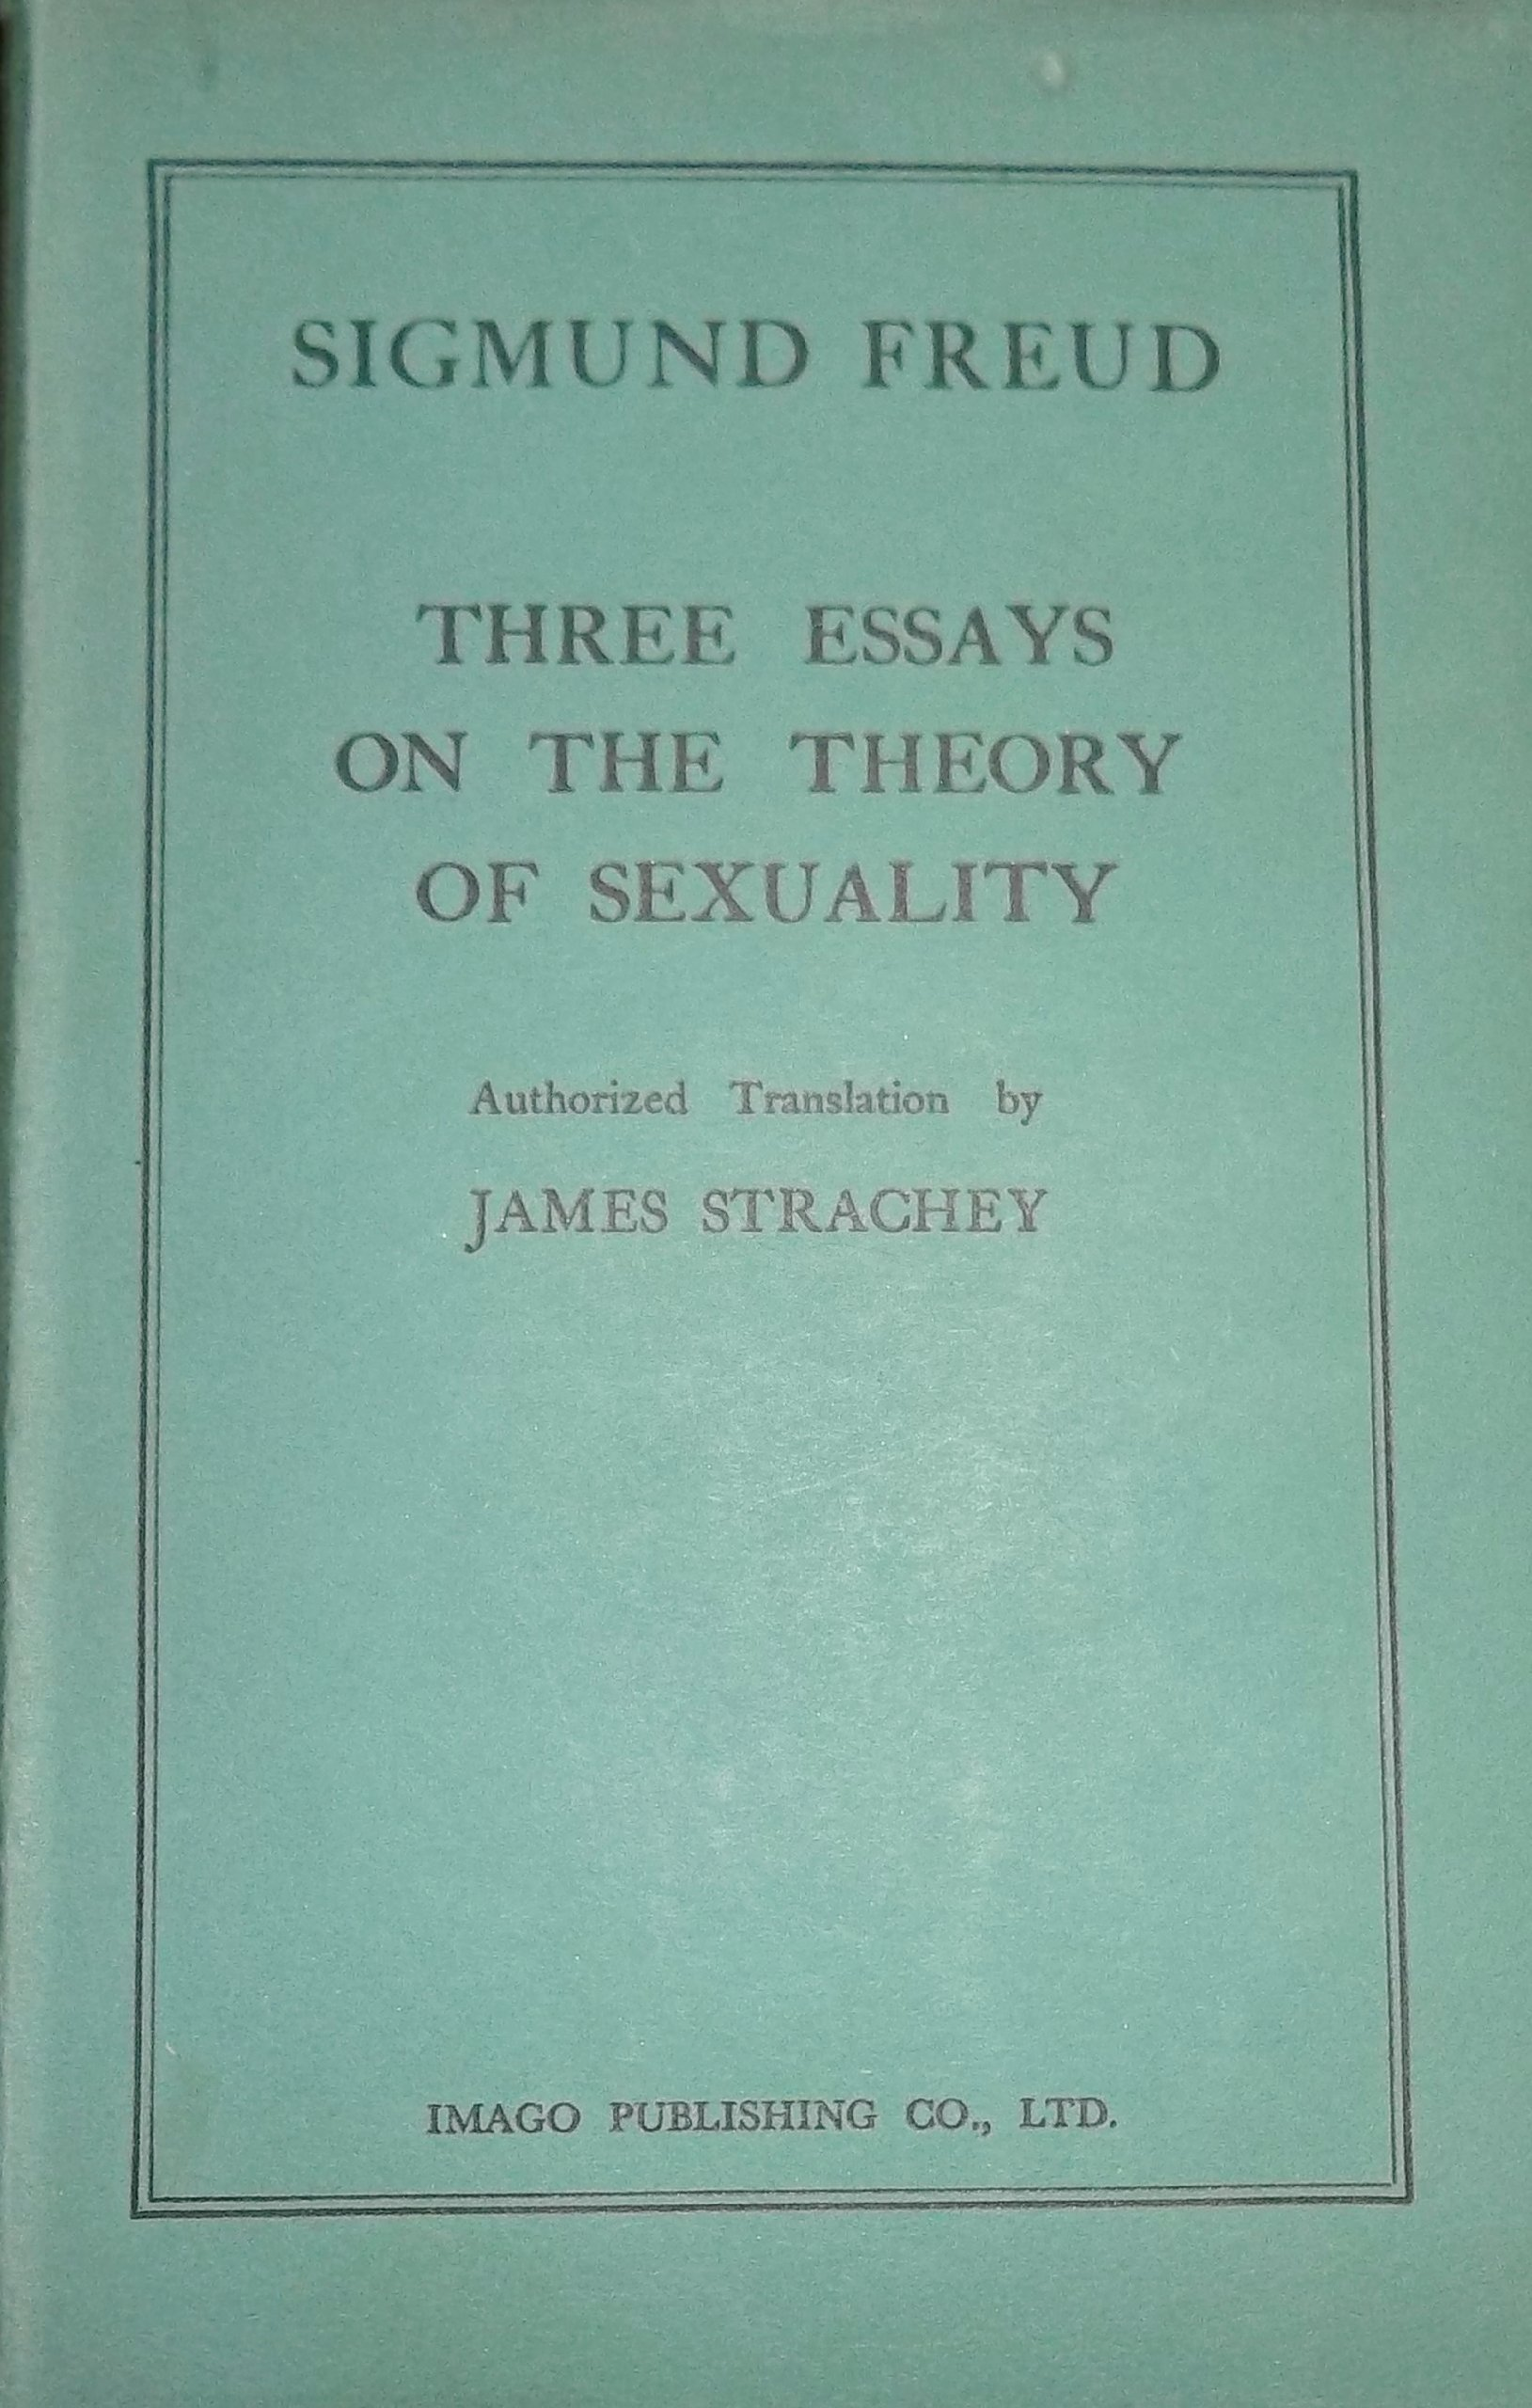 freud 3 essays on sexuality summary Buy three essays on the theory of sexuality by sigmund freud, james strachey  (isbn: 9781614270539) from amazon's book store everyday low prices and.